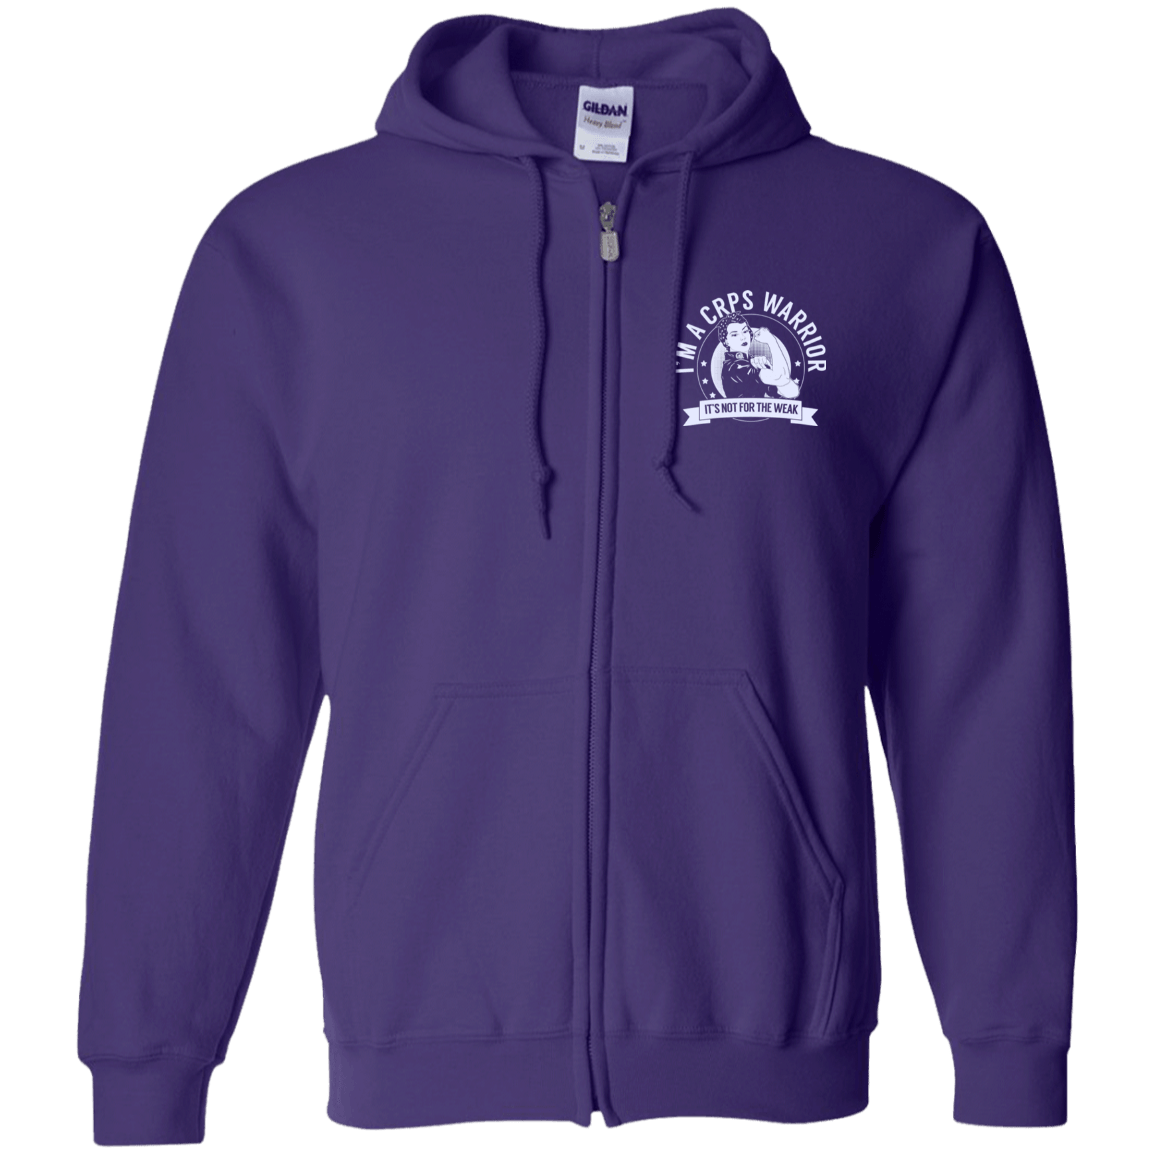 Complex Regional Pain Syndrome - CRPS Warrior NFTW Zip Up Hooded Sweatshirt - The Unchargeables